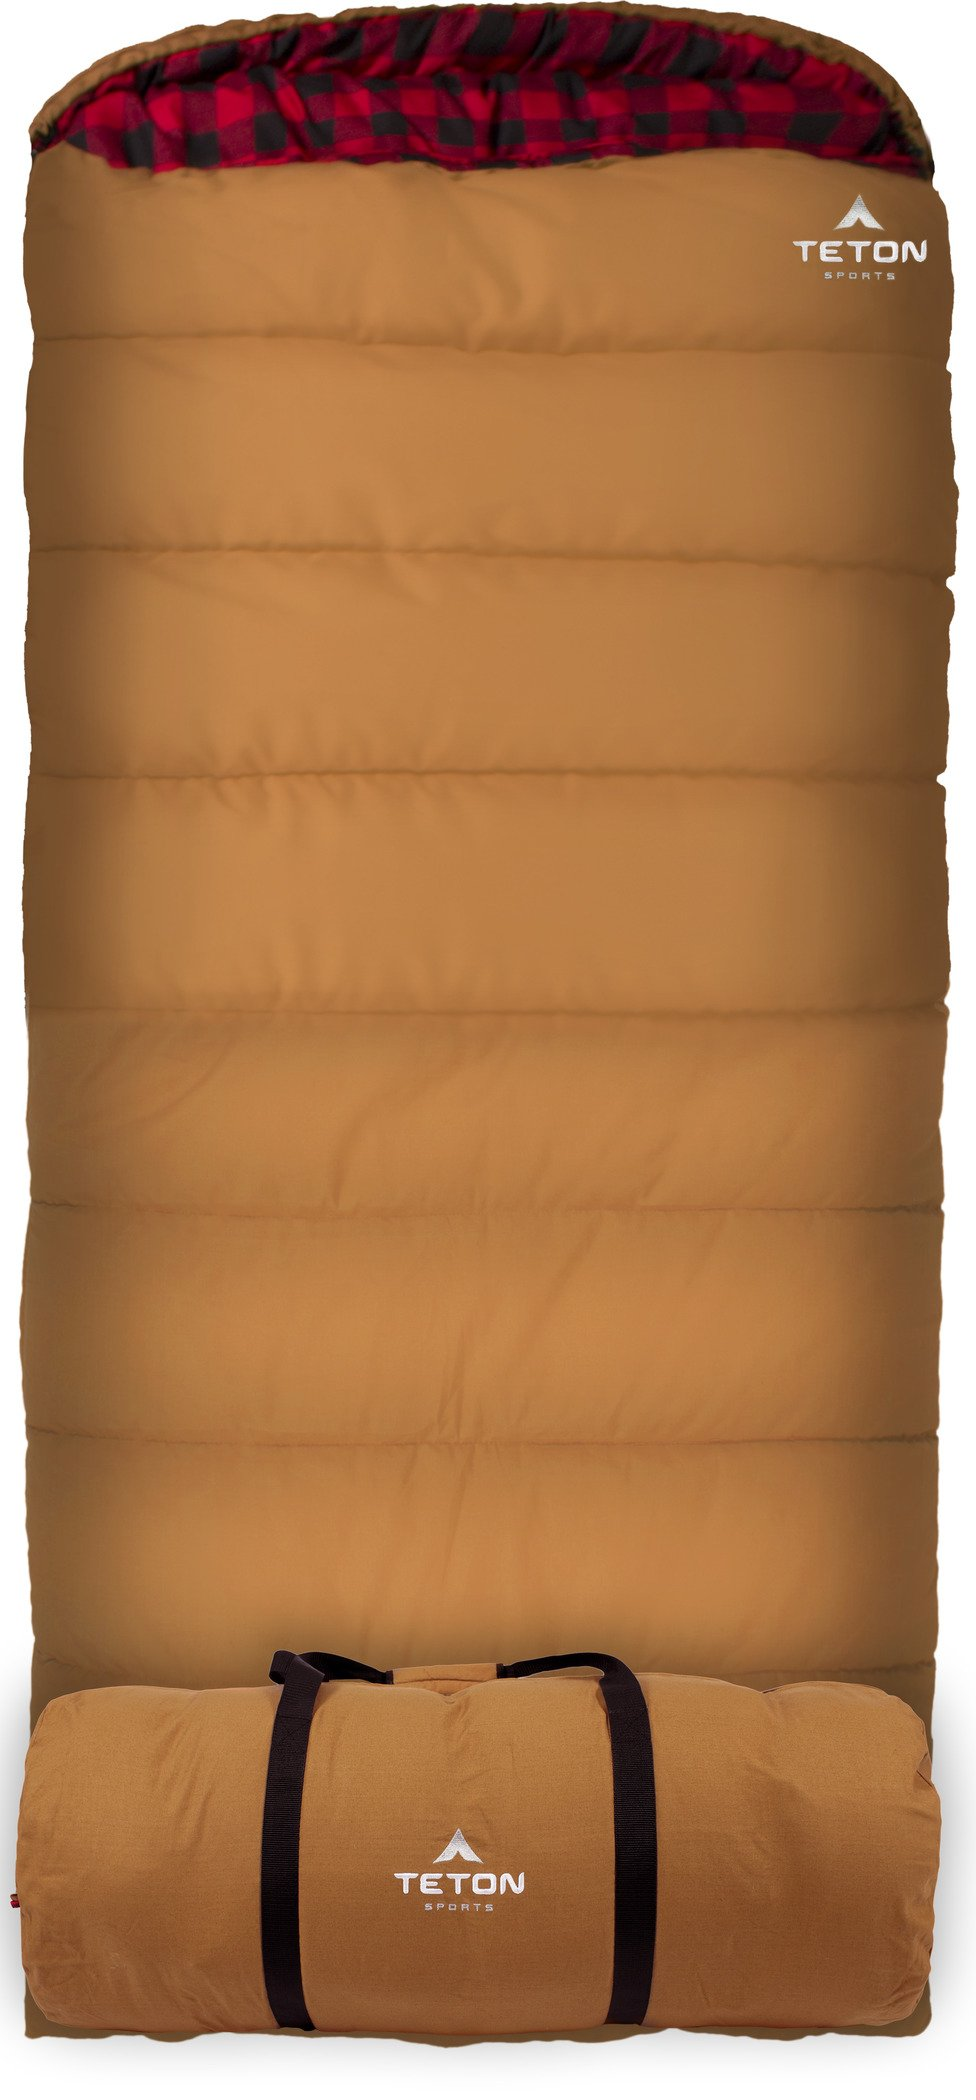 TETON Sports Deer Hunter Sleeping Bag; Warm and Comfortable Sleeping Bag Great for Camping Even in Cold Seasons 3